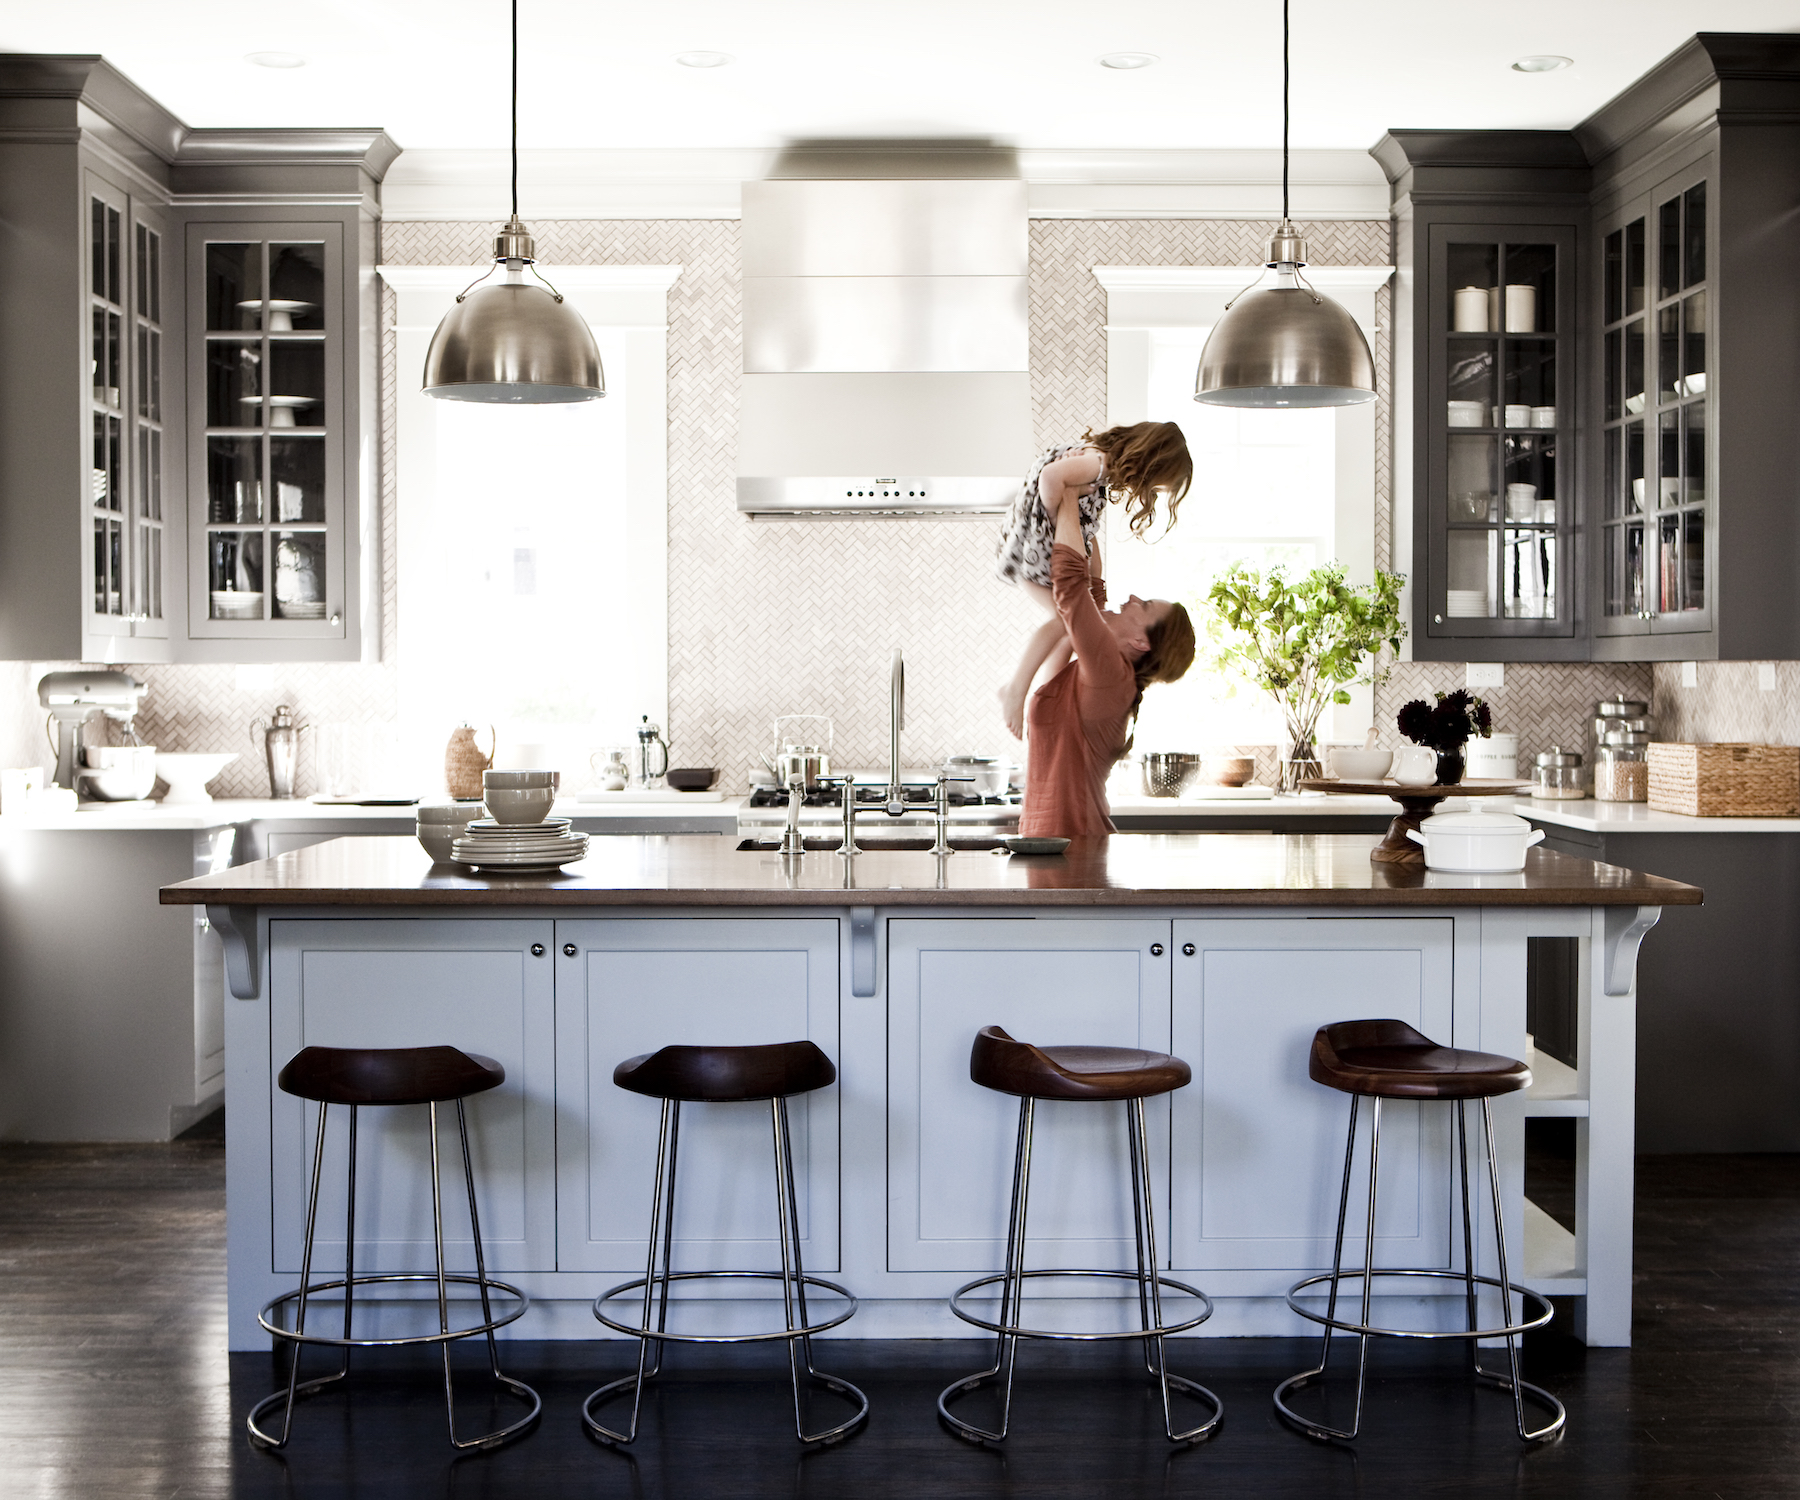 Pretty kitchen with blue cabinets, stool, mother, and daughter